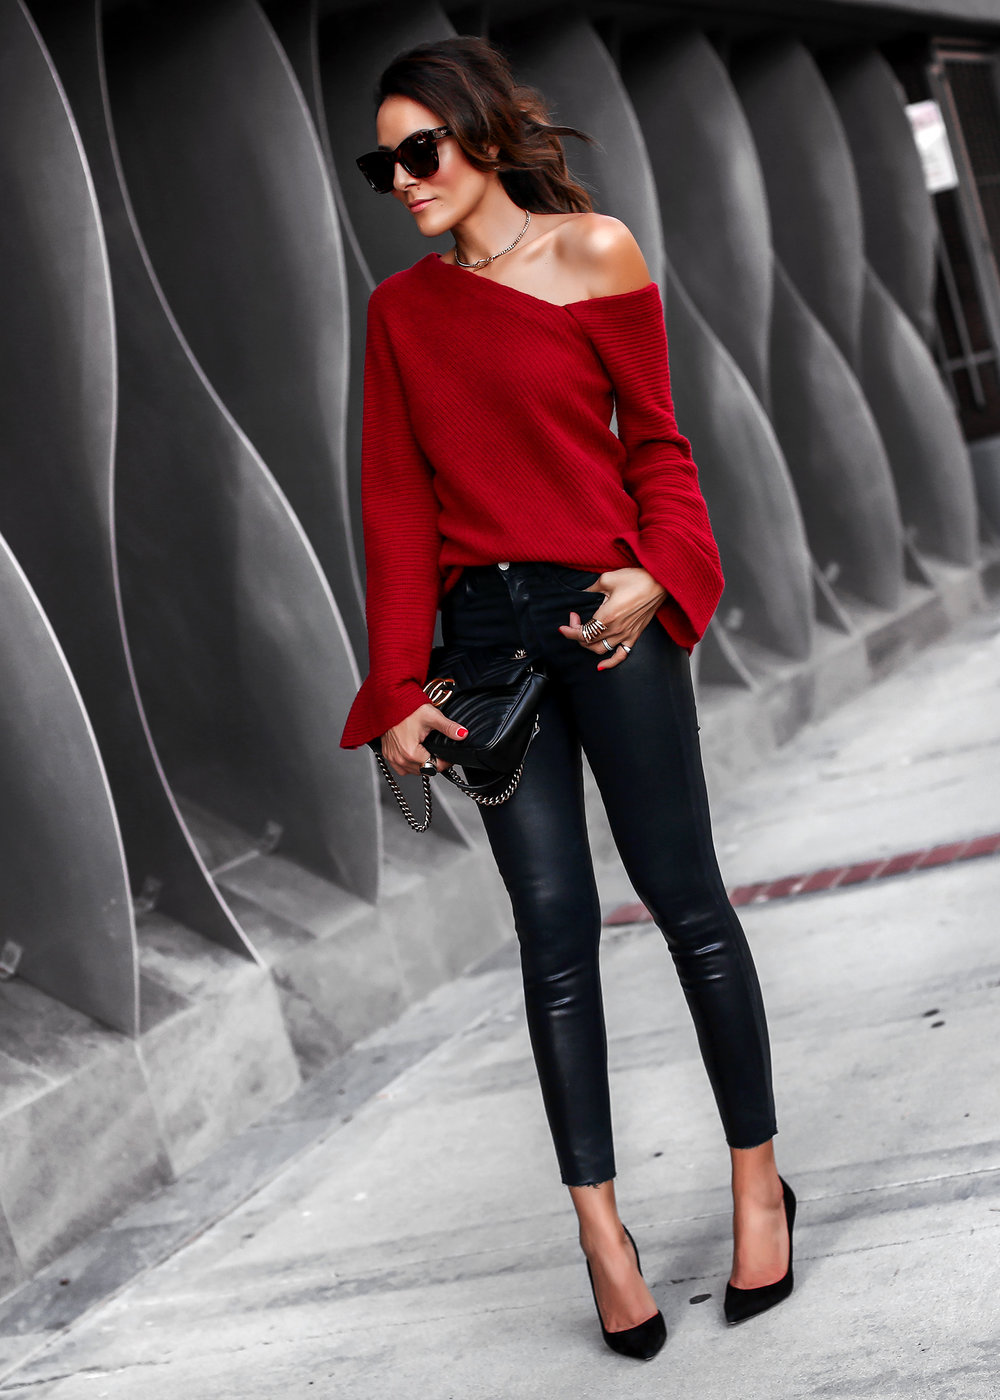 ALC Asymmetric Cashmere Sweater L'Agence Skinny jeans Gucci Bag Nordstrom Anniversary Sale.jpg